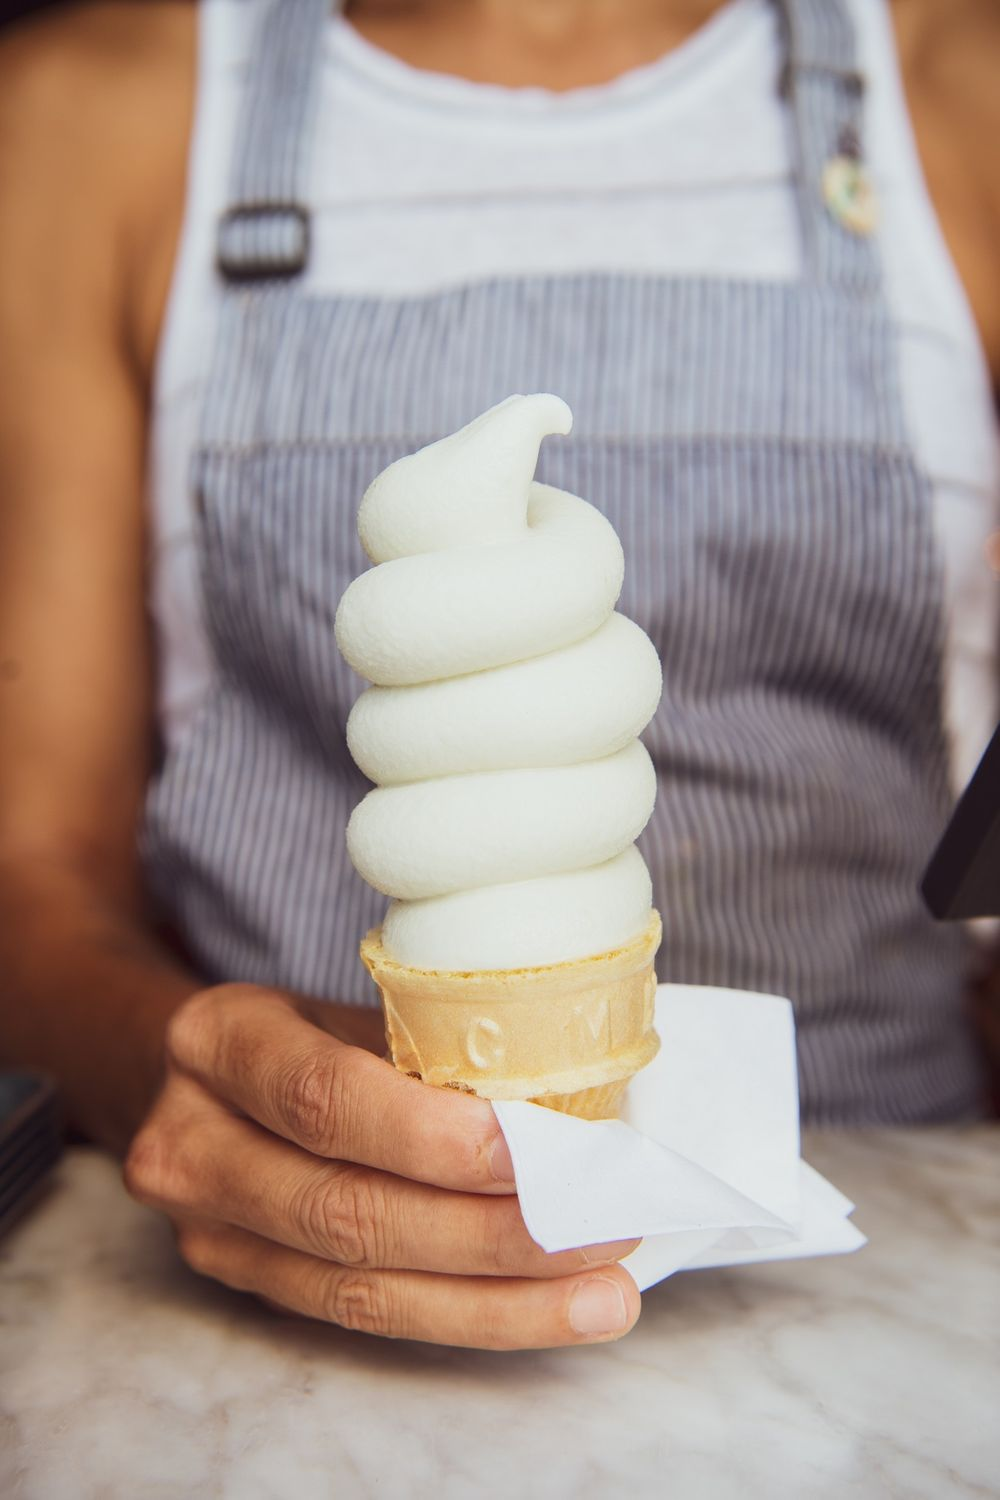 Soft Serve Ice Cream in a Cone